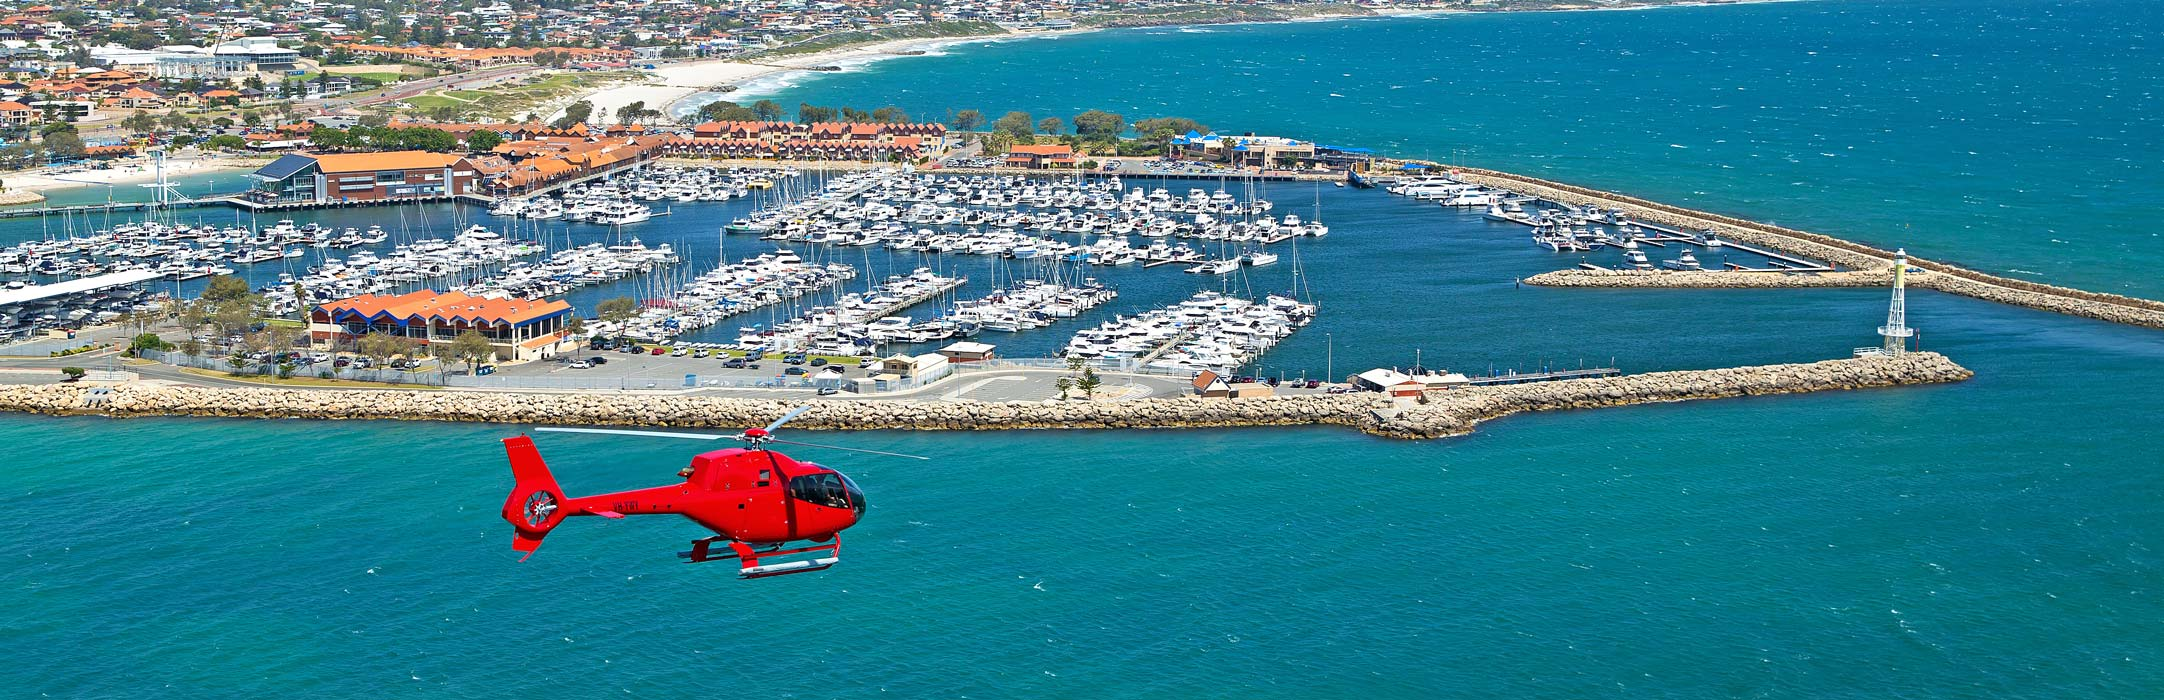 helicopter charter perth with Custom Charter on 386008 moreover Wa Regulated Airline Routes Report 2015 besides Au hnz australia pty ltd besides Airwork moreover New Zealand Blakeman Heliwork Merges With Precision Helicopters.